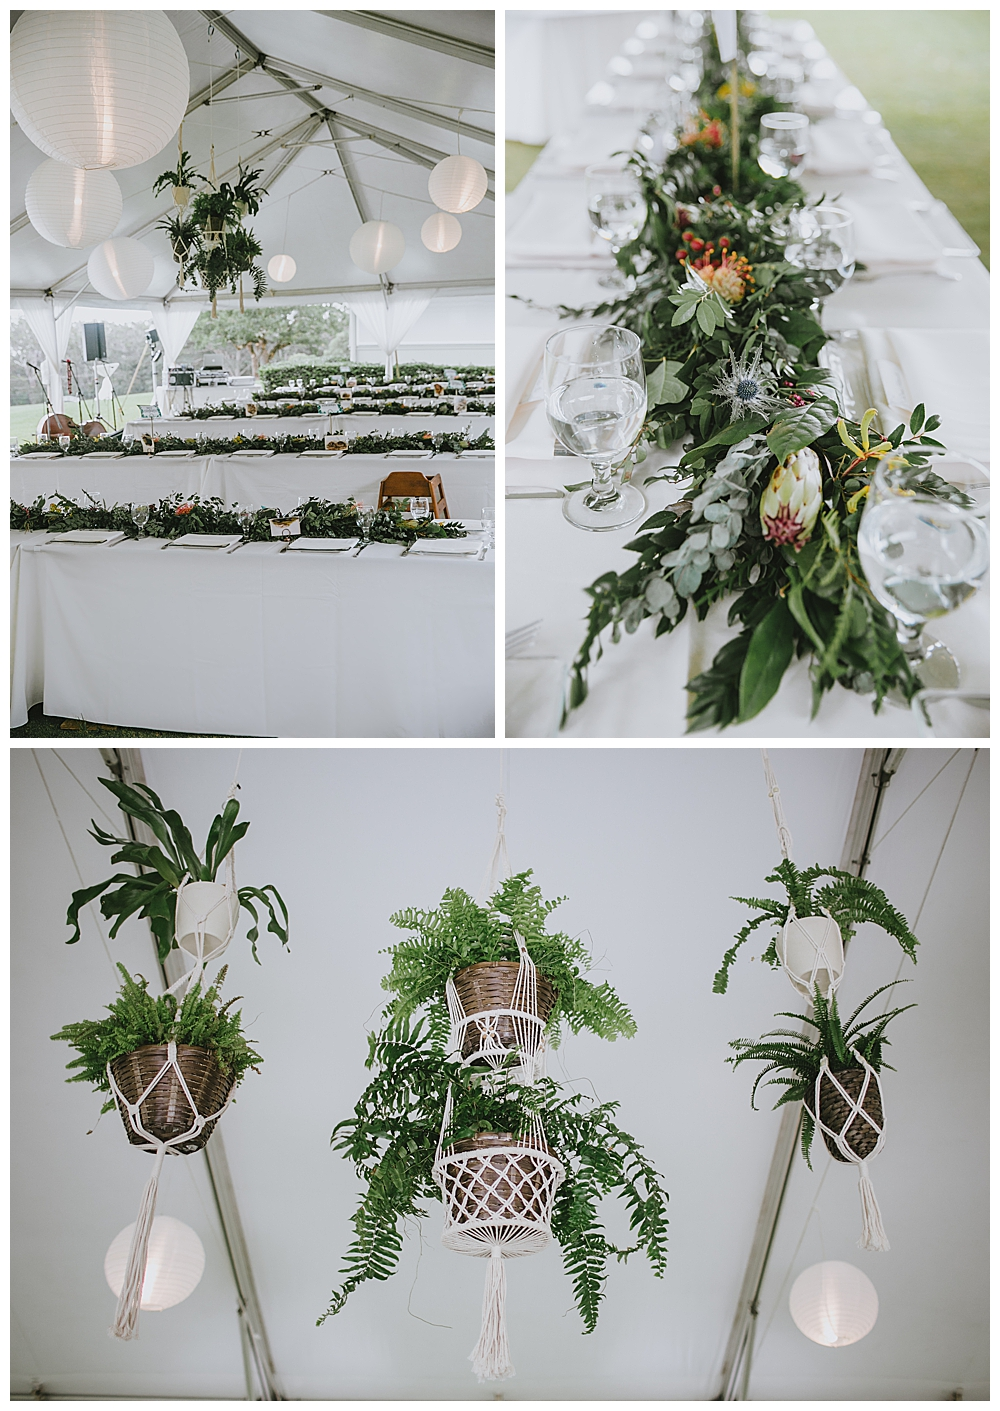 greenery-wedding-recepetion-decor